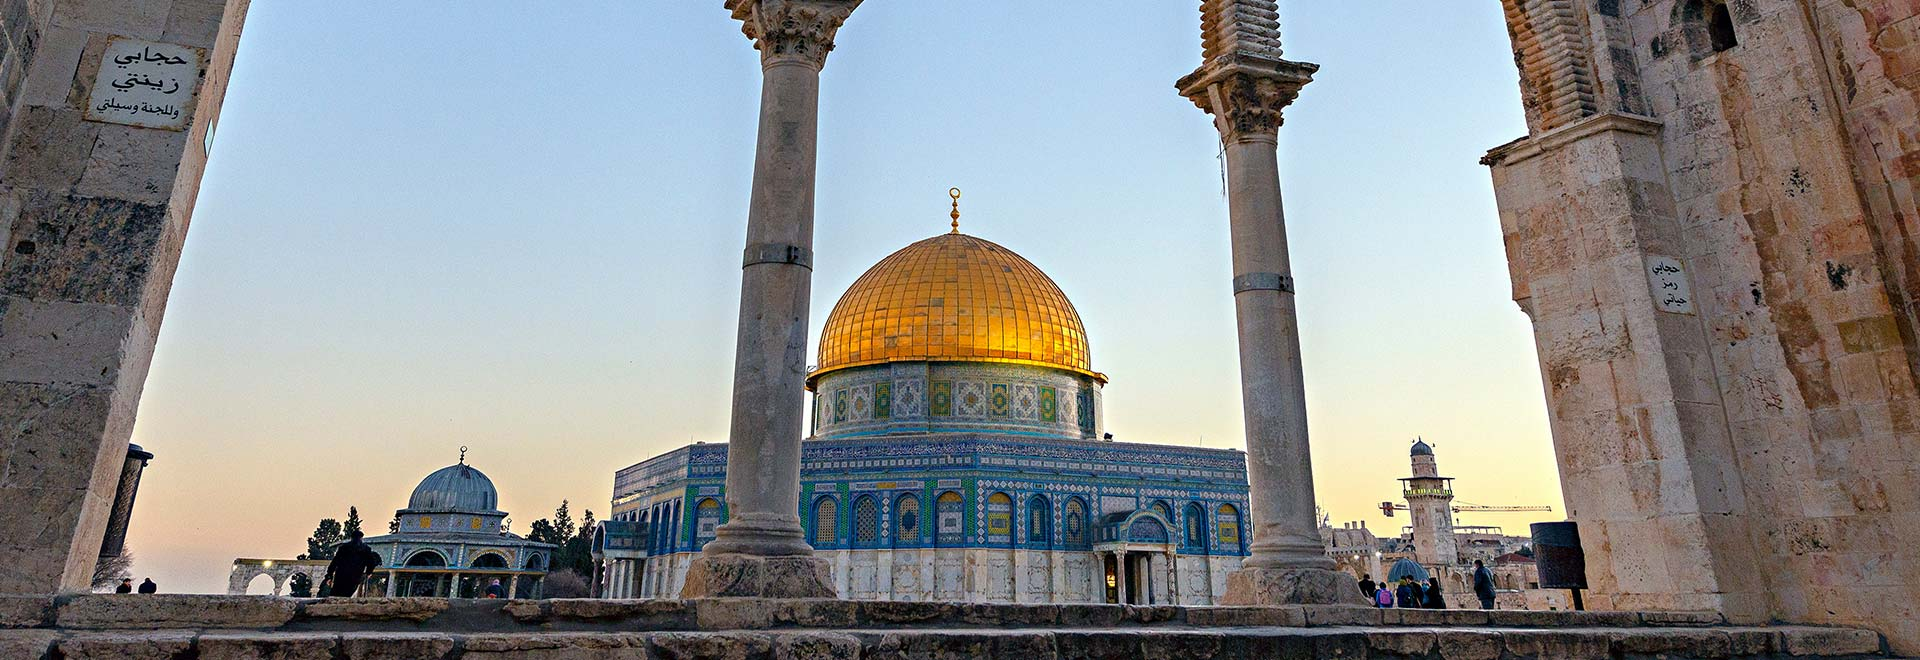 Middle East Israel Jerusalem Dome of the Rock